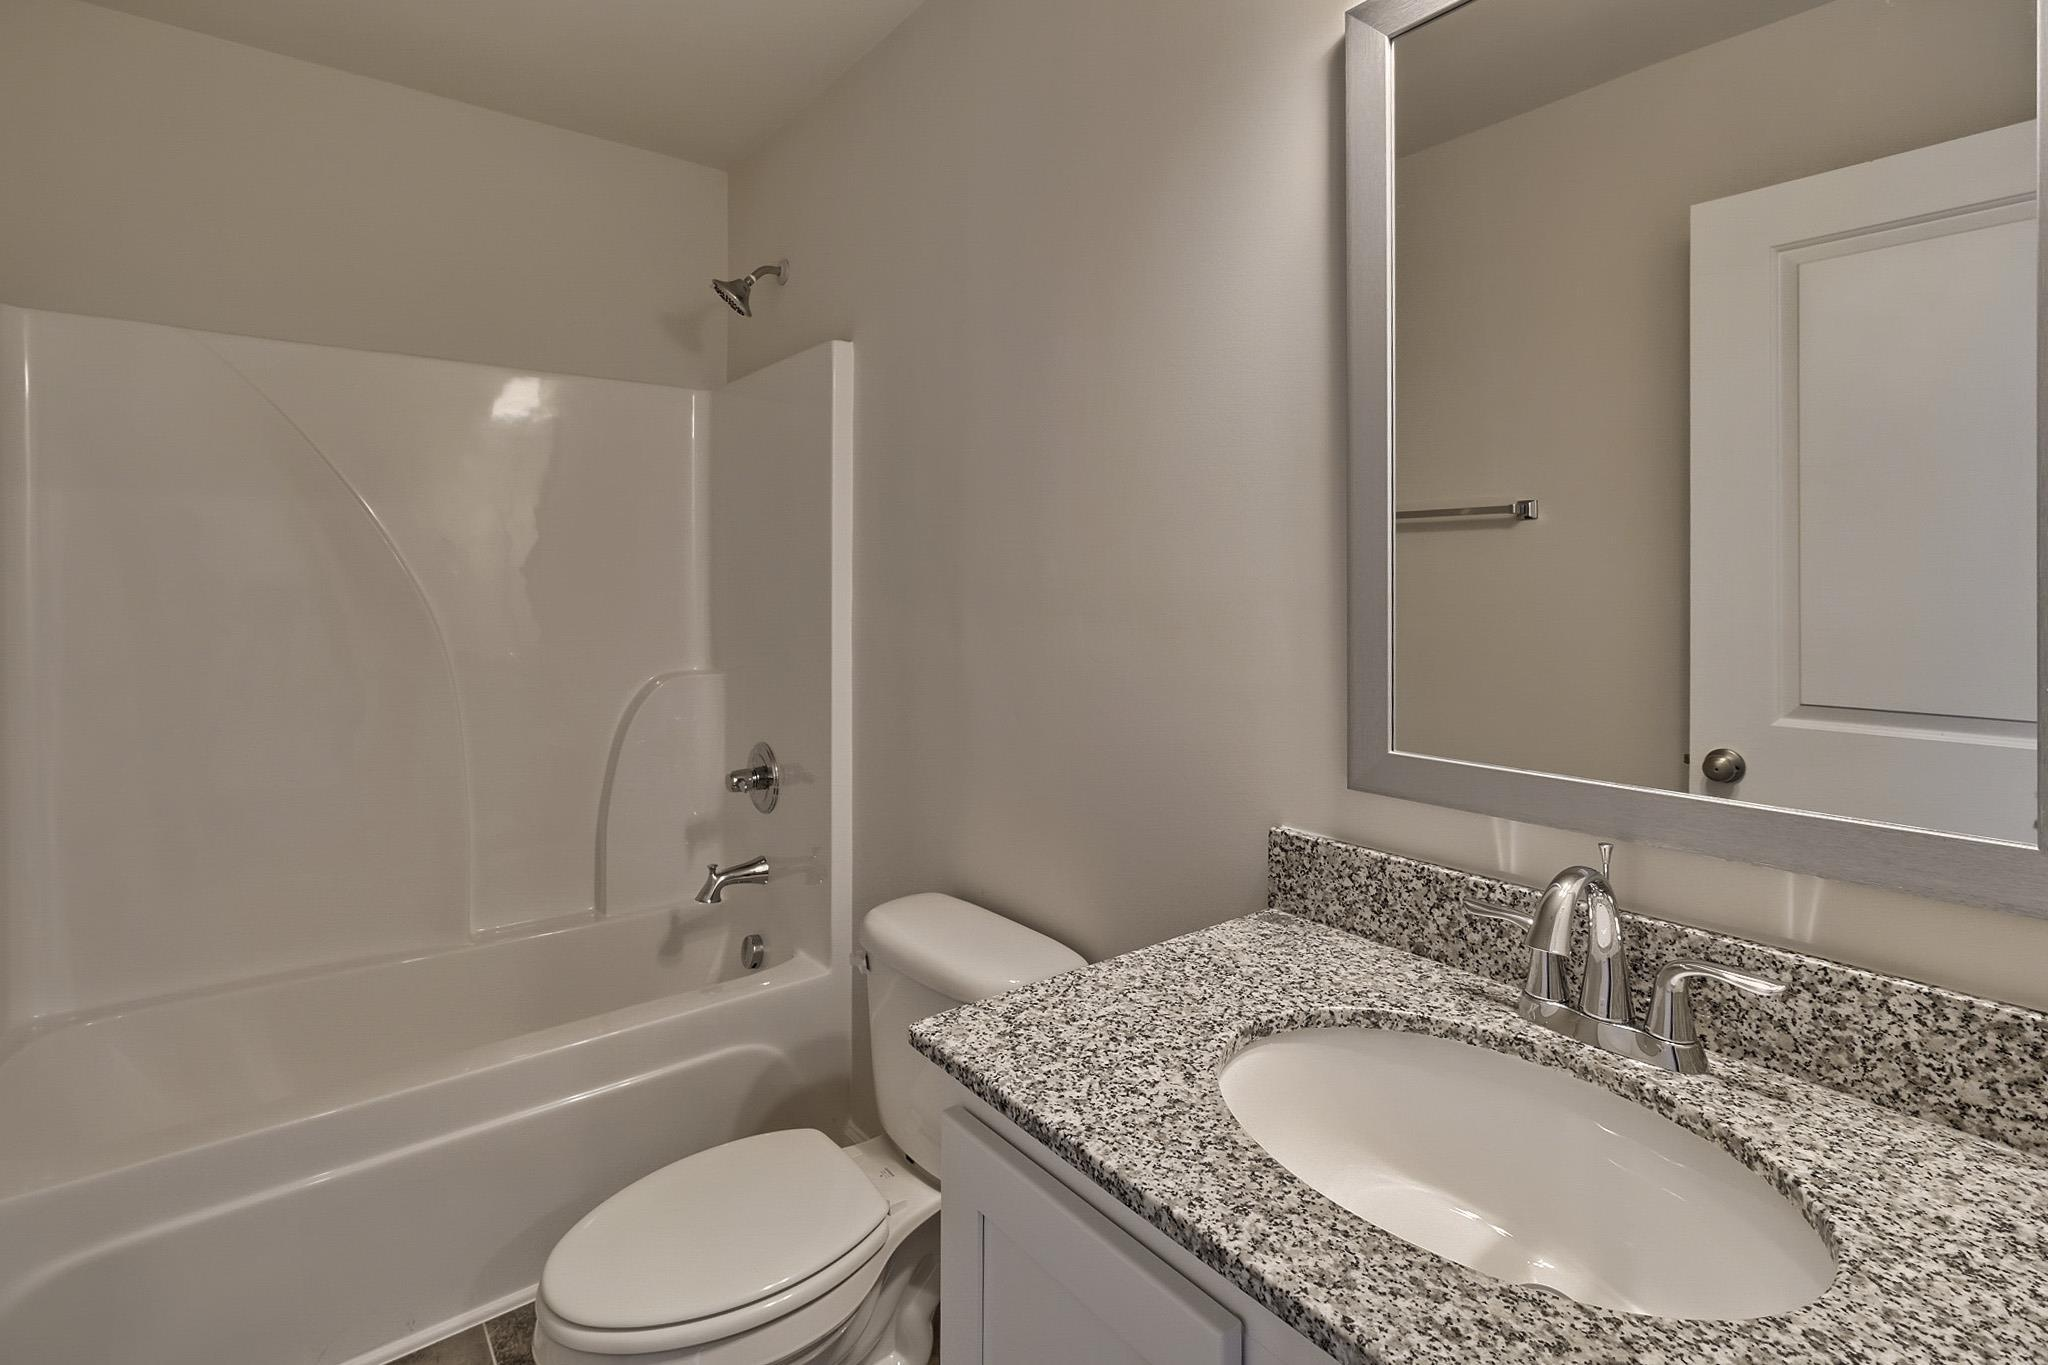 Bathroom featured in the Spruce B By McGuinn Hybrid Homes in Columbia, SC